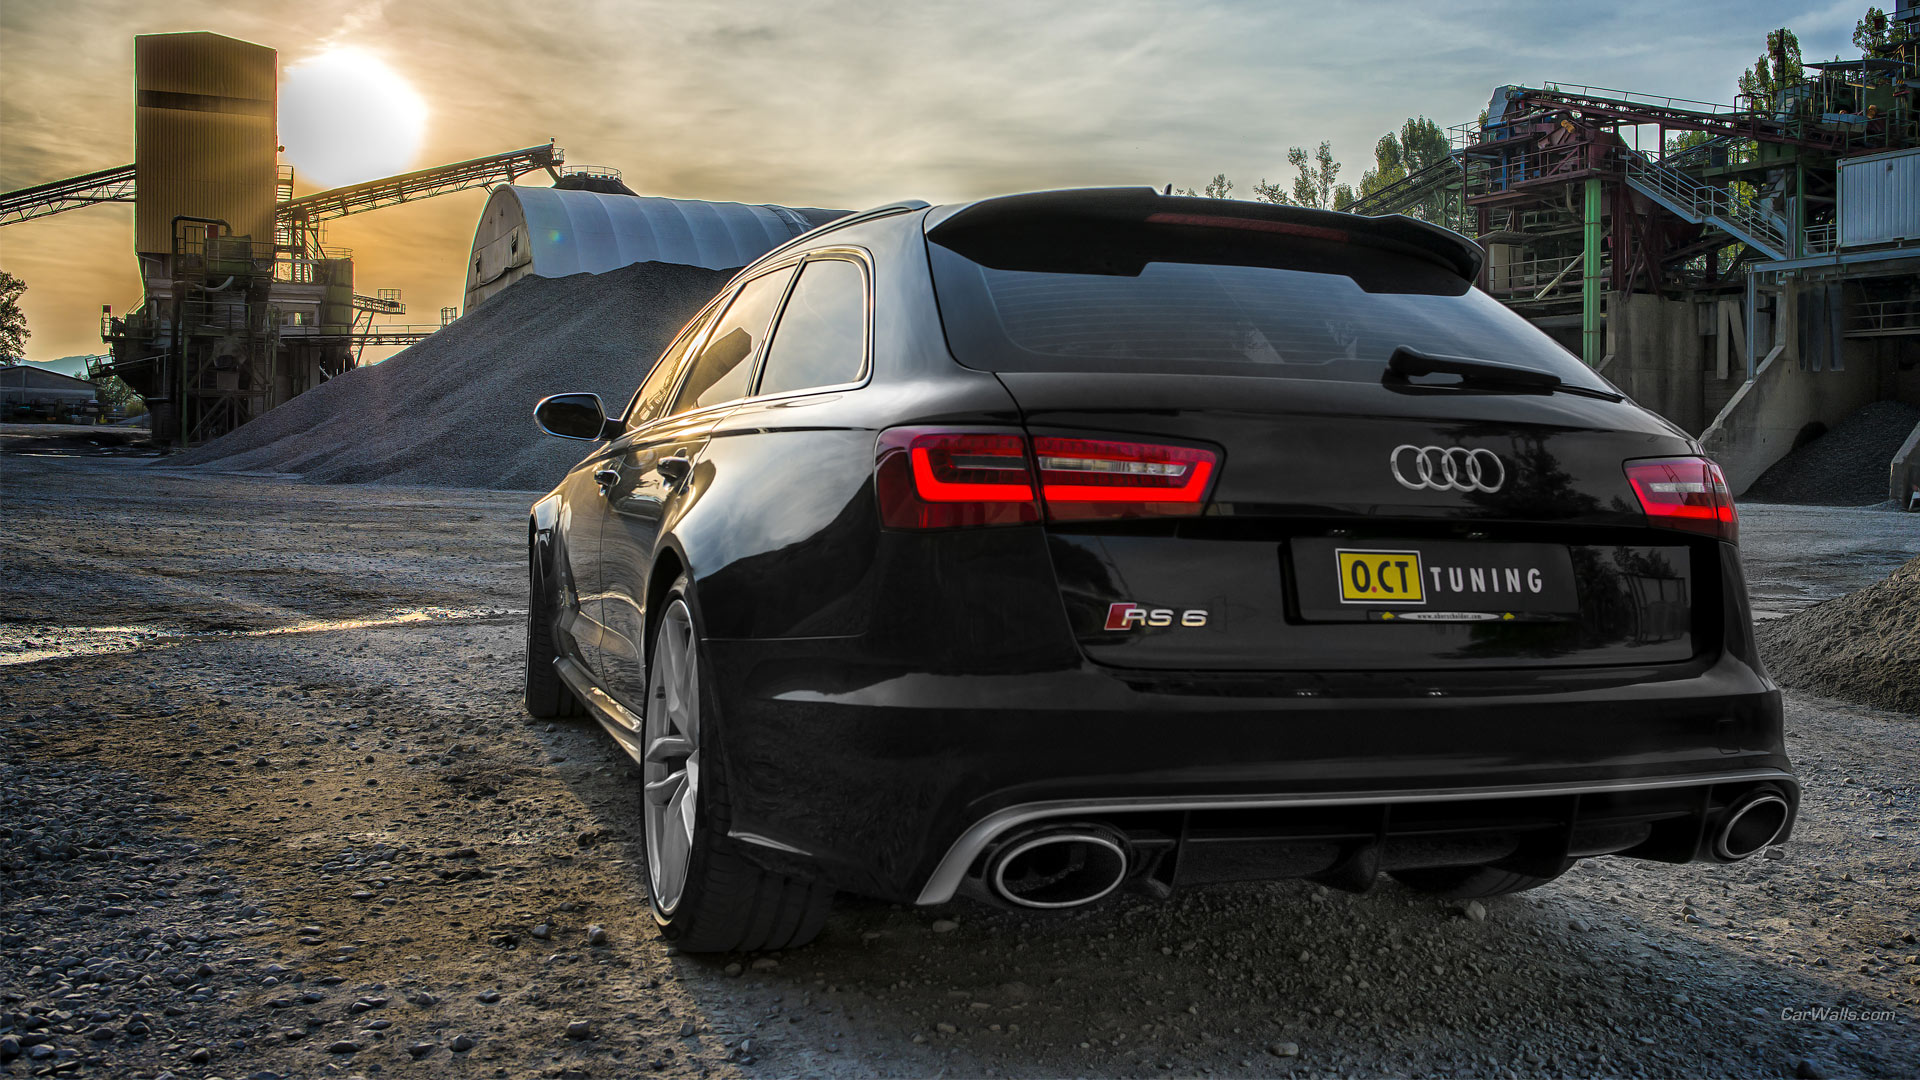 1920x1080 - Audi RS6 Wallpapers 15